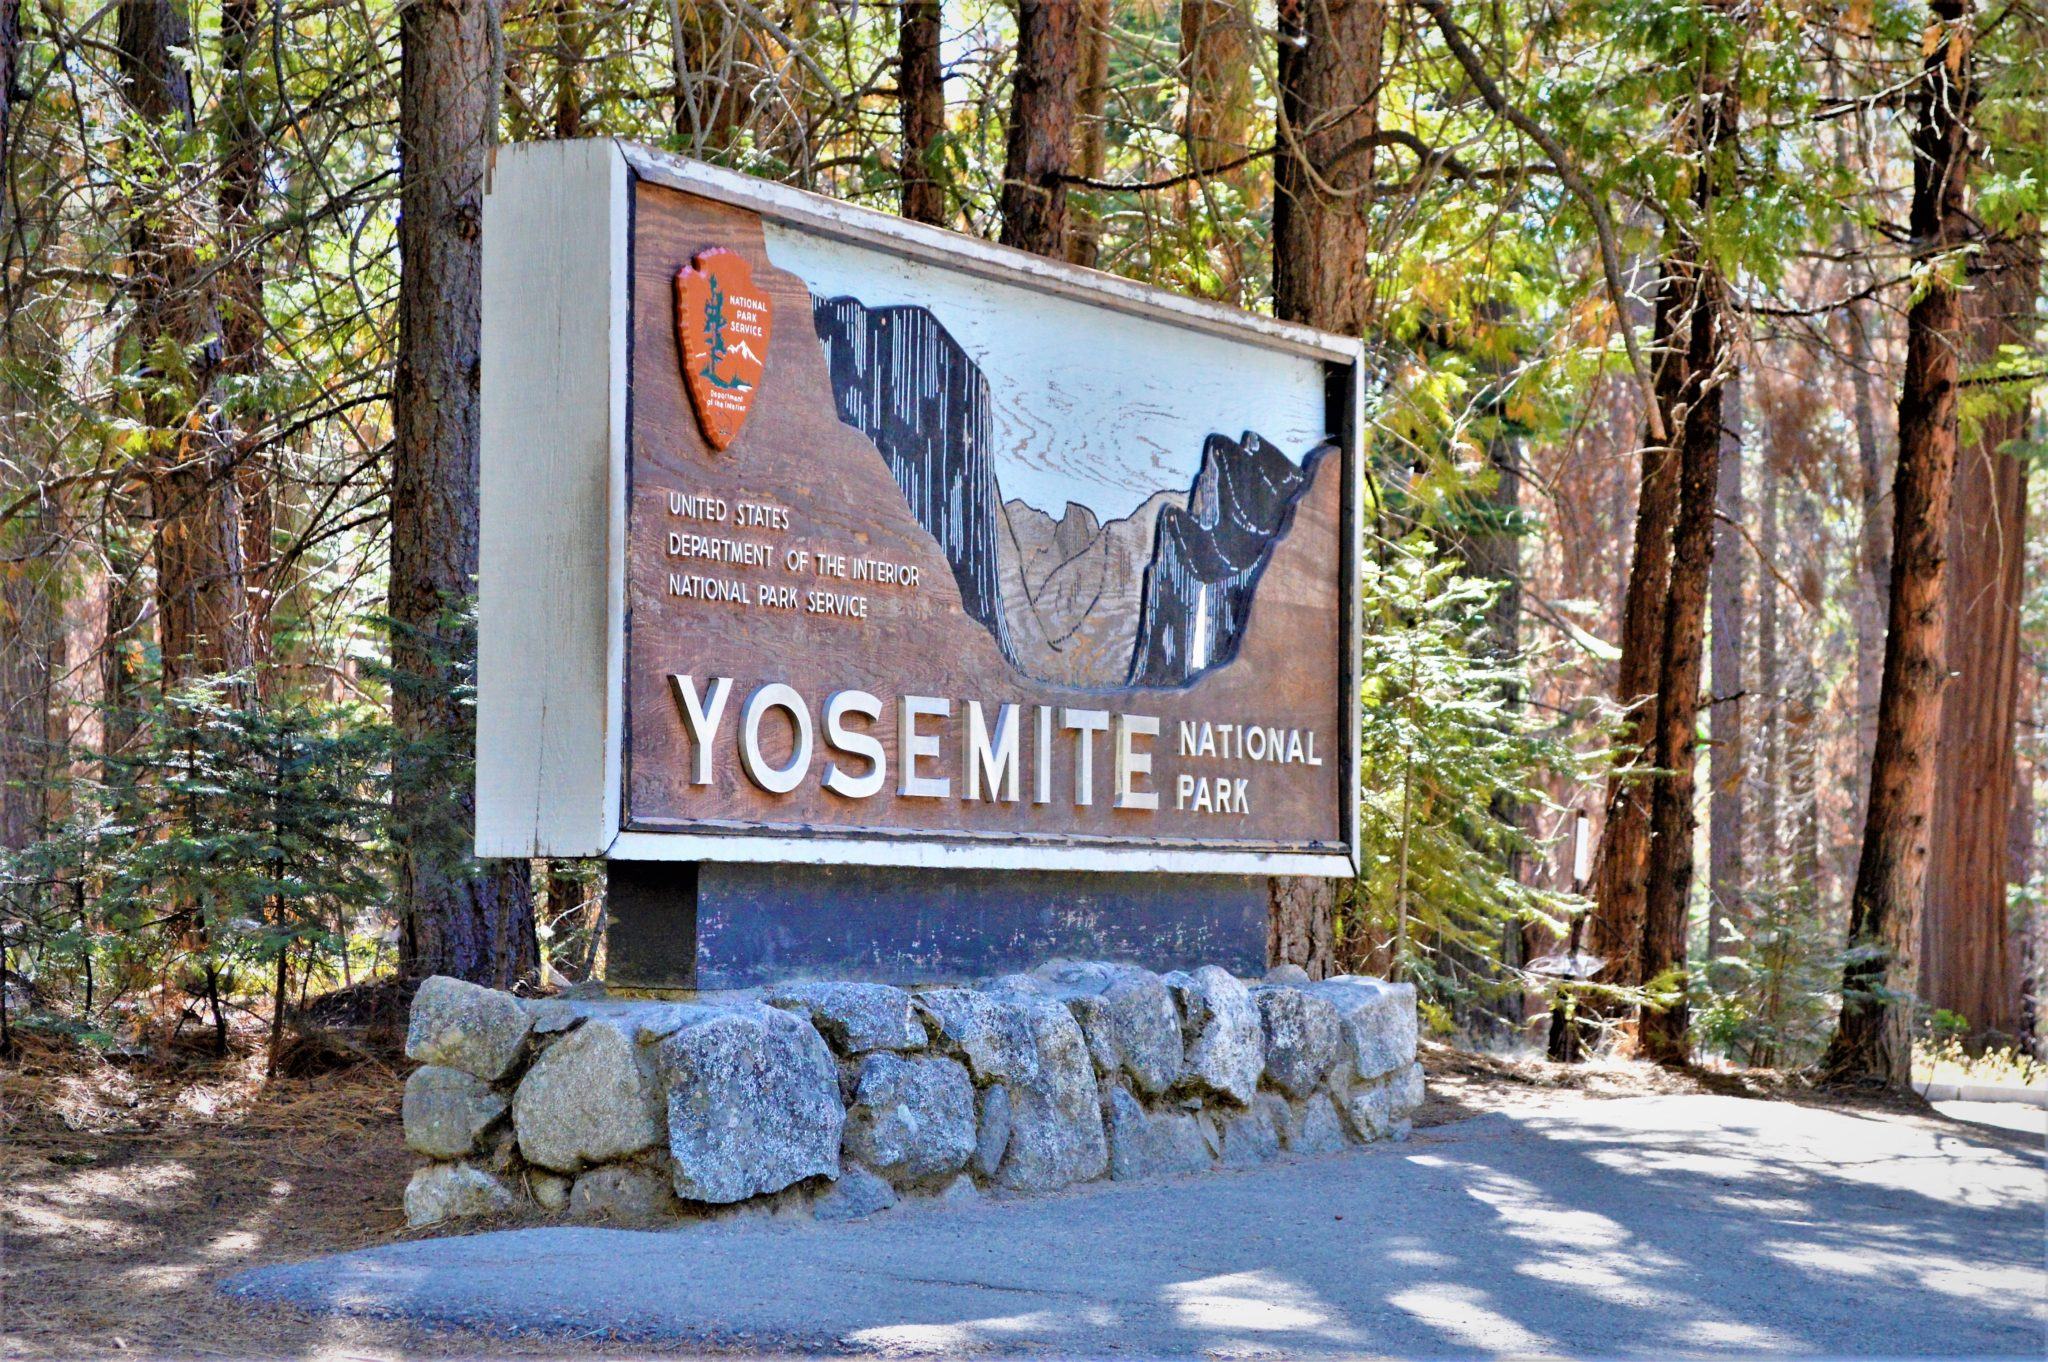 Welcome to Yosemite National Park sign, California, things to do at yosemite